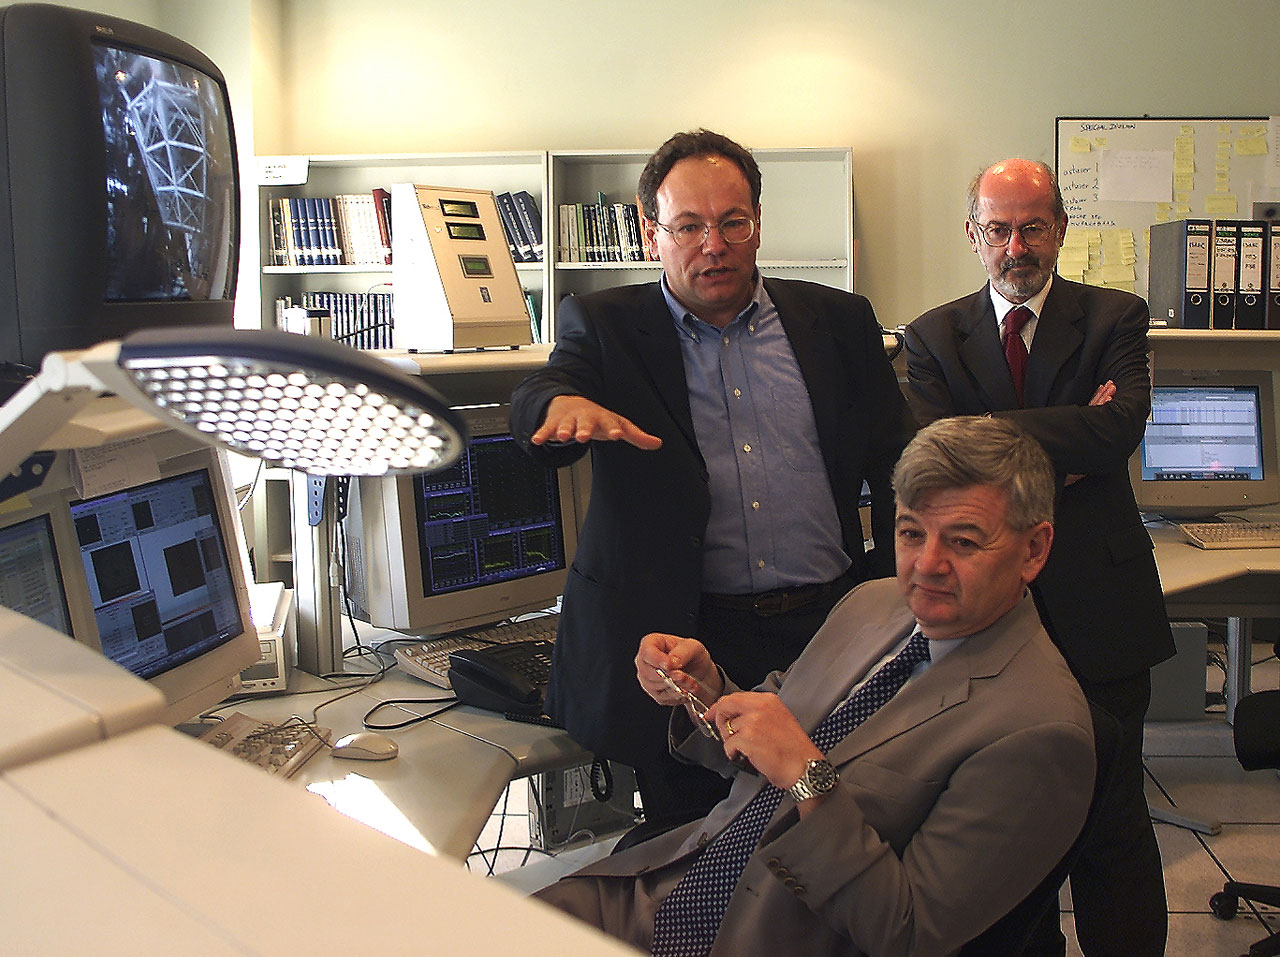 Minister Fischer at the ANTU Control Console